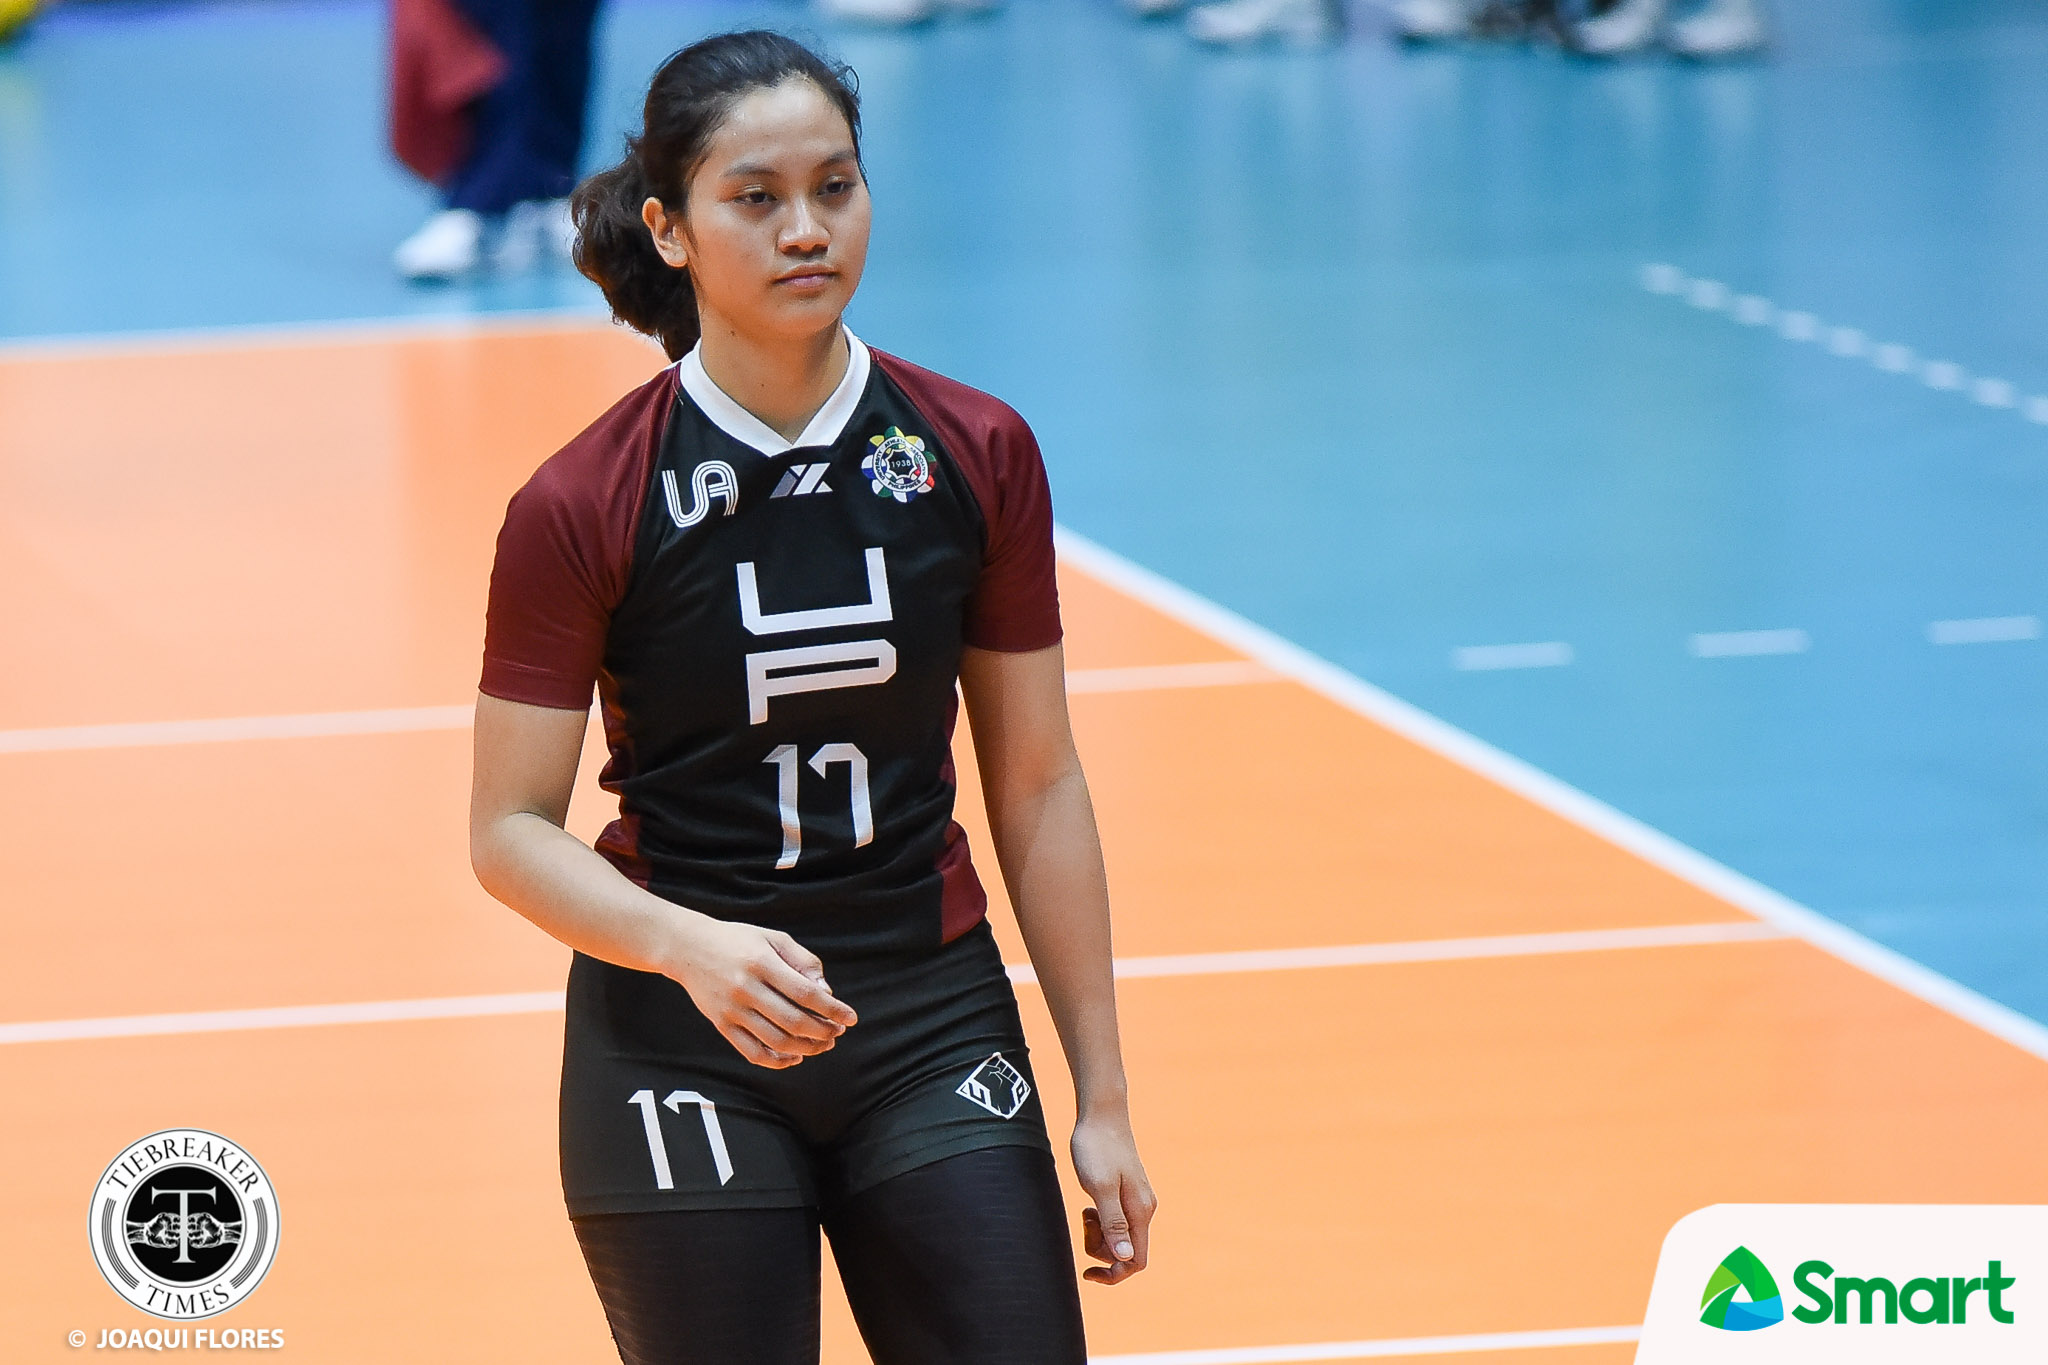 Tiebreaker Times Do-it-all Ayel Estrañero comes up clutch for Lady Maroons News UAAP UP Volleyball  UP Women's Volleyball UAAP Season 80 Women's Volleyball UAAP Season 80 Arielle Estranero